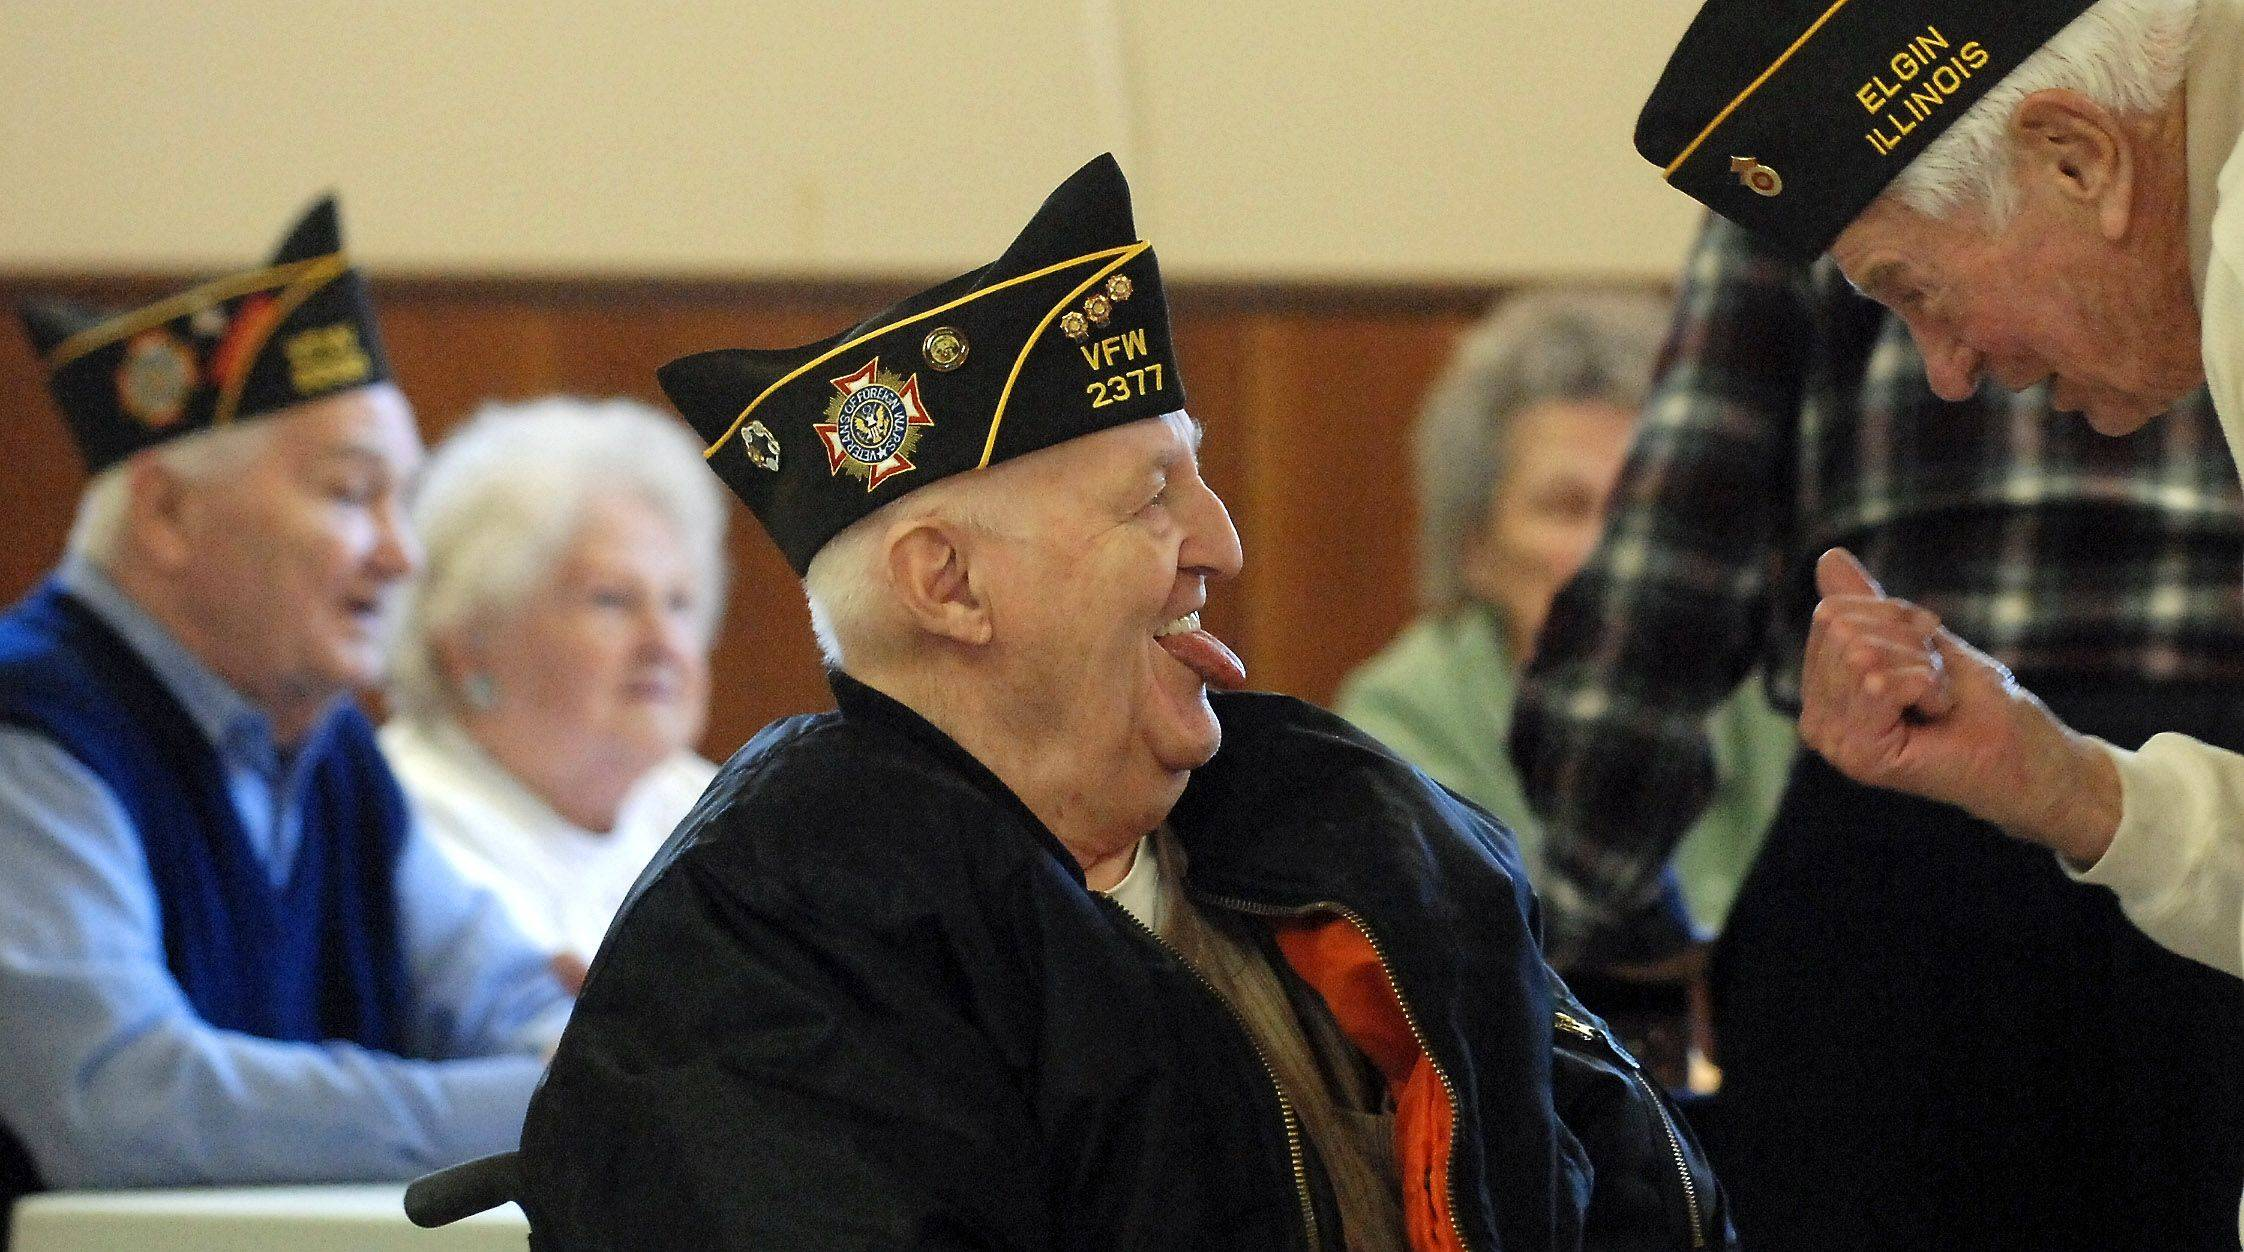 A.J. Sheehan, left, laughs as Ray Bohne leans in to tell him a story during a luncheon in honor of Pearl Harbor Day for WWII veterans hosted by VFW Post #1307 and American Legion Post #57 at the Elgin VFW Tuesday. Sheehan was in the Army and Bohne served in the Coast Guard. Both men live in Elgin.